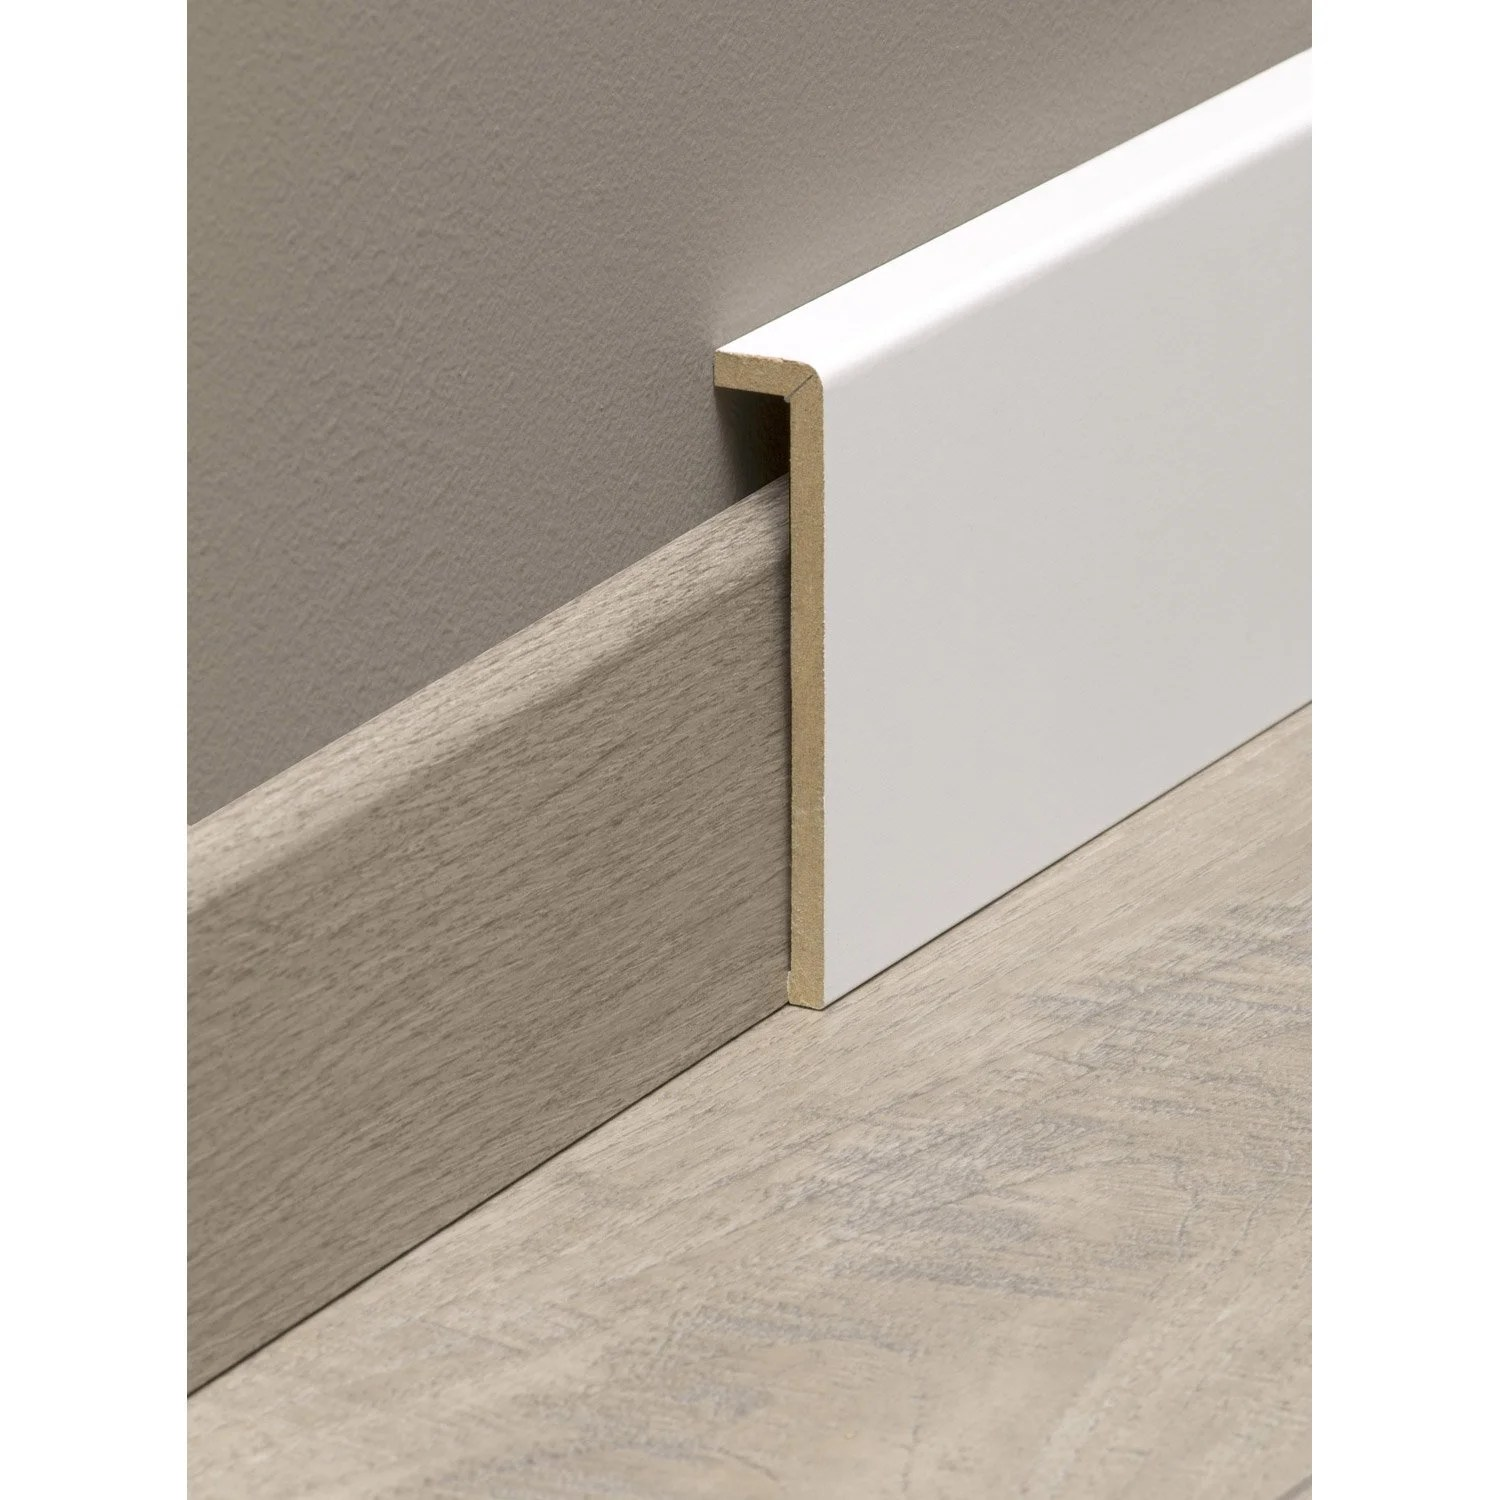 Carrelage à Clipser Leroy Merlin Surplinthe De Rénovation Médium Mdf Mélaminé Blanc 19 X 110 Mm L 2 2 M